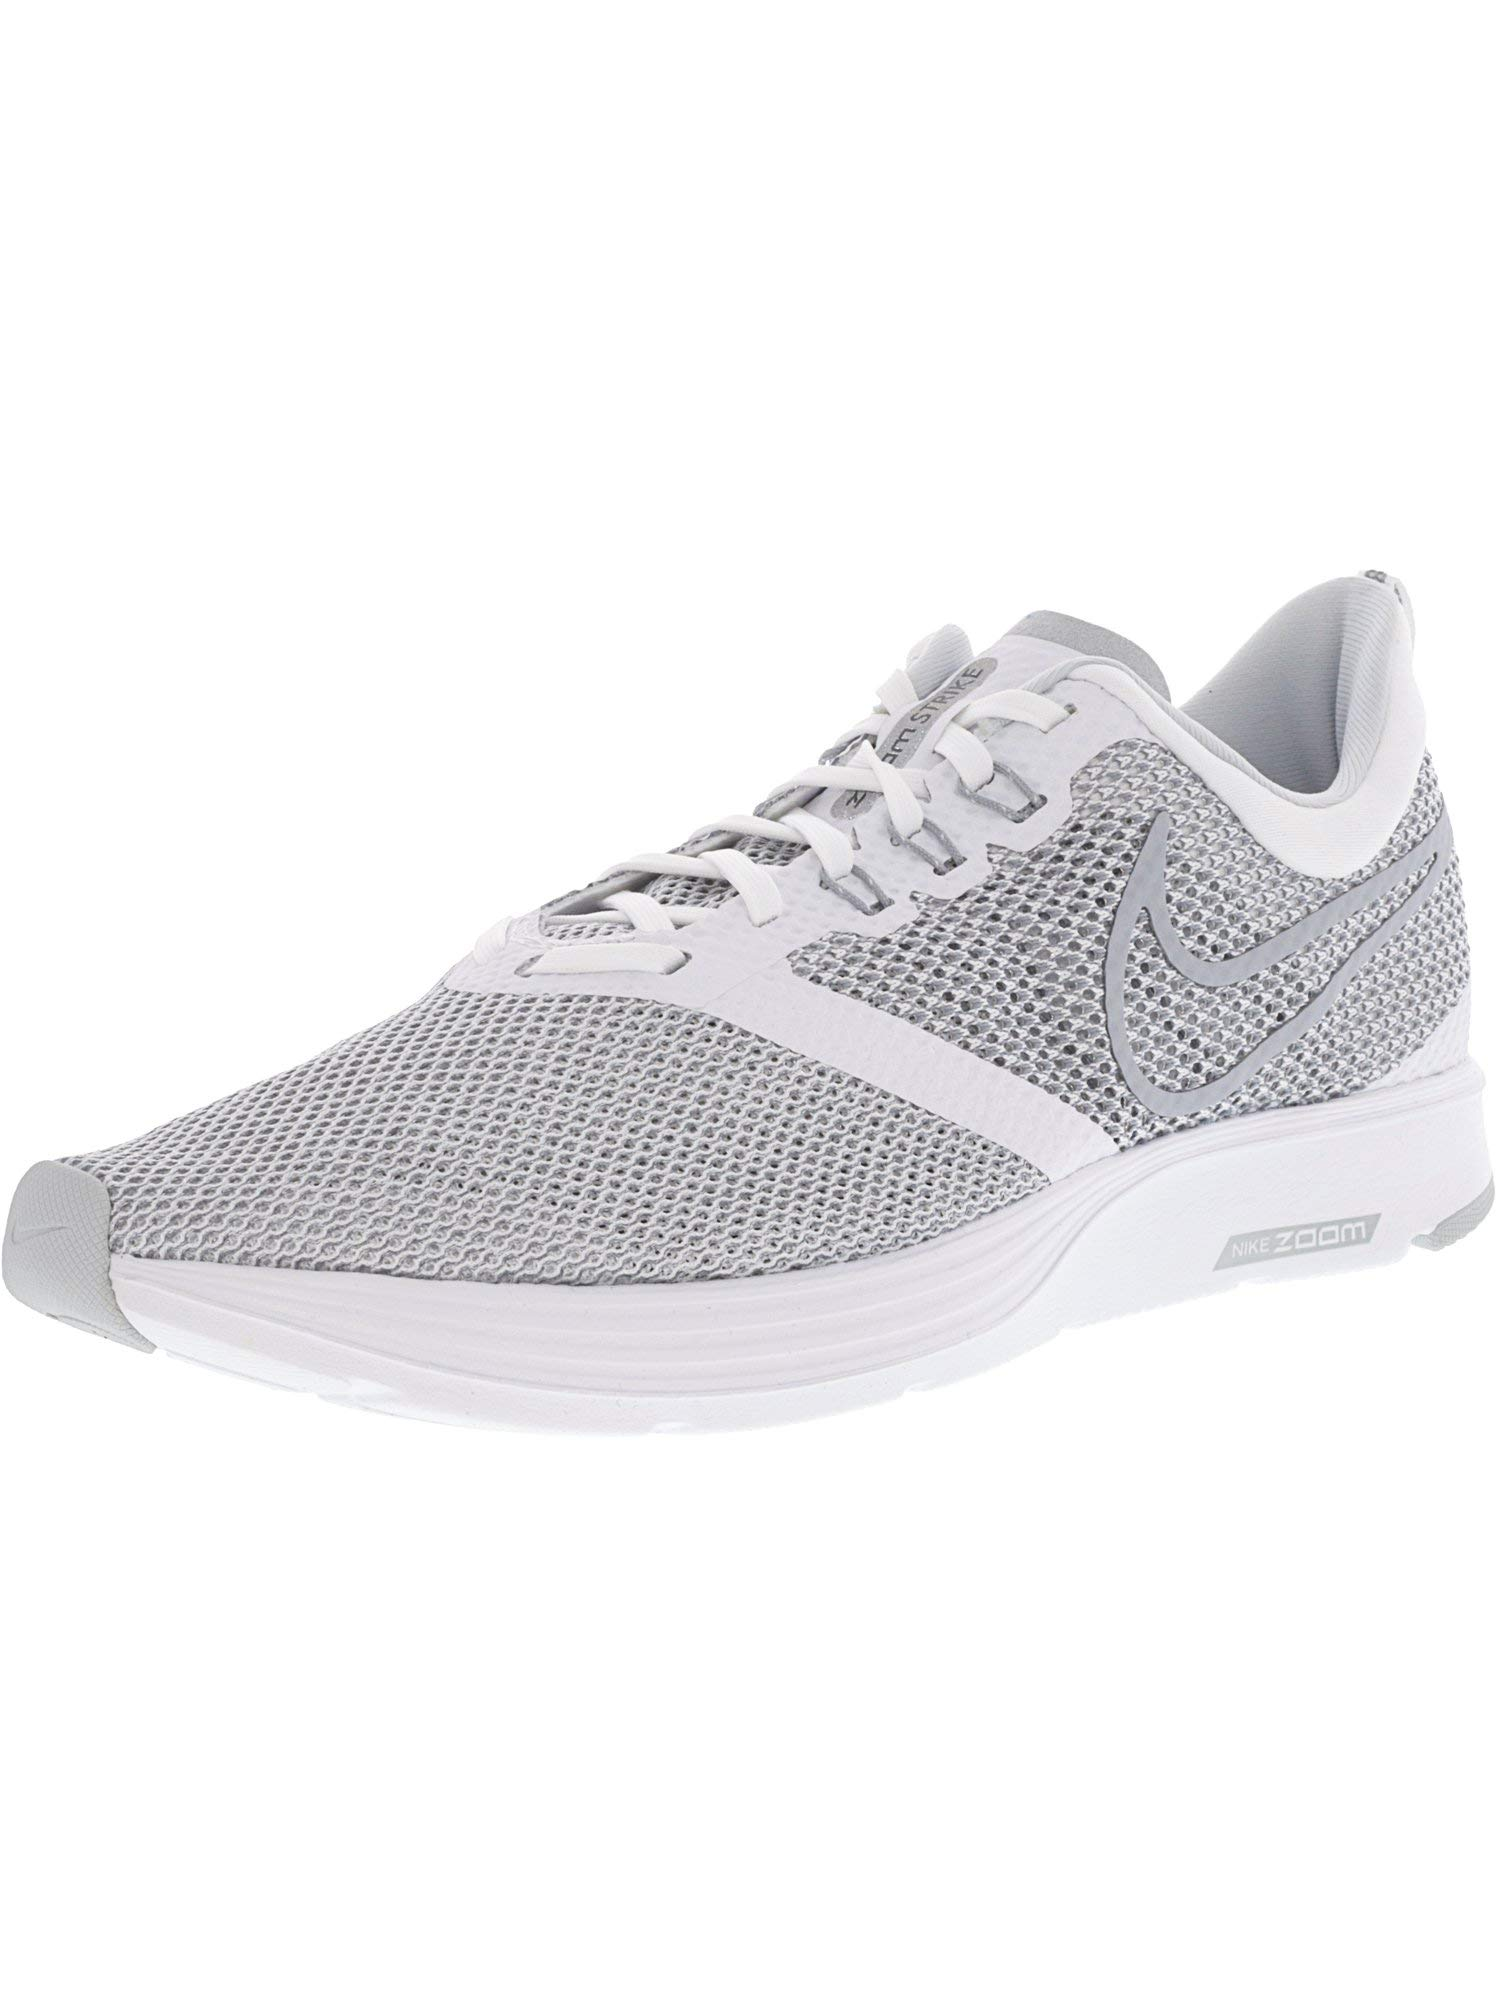 fbe208ed5938 Galleon - Nike Men s Zoom Strike Running Shoes